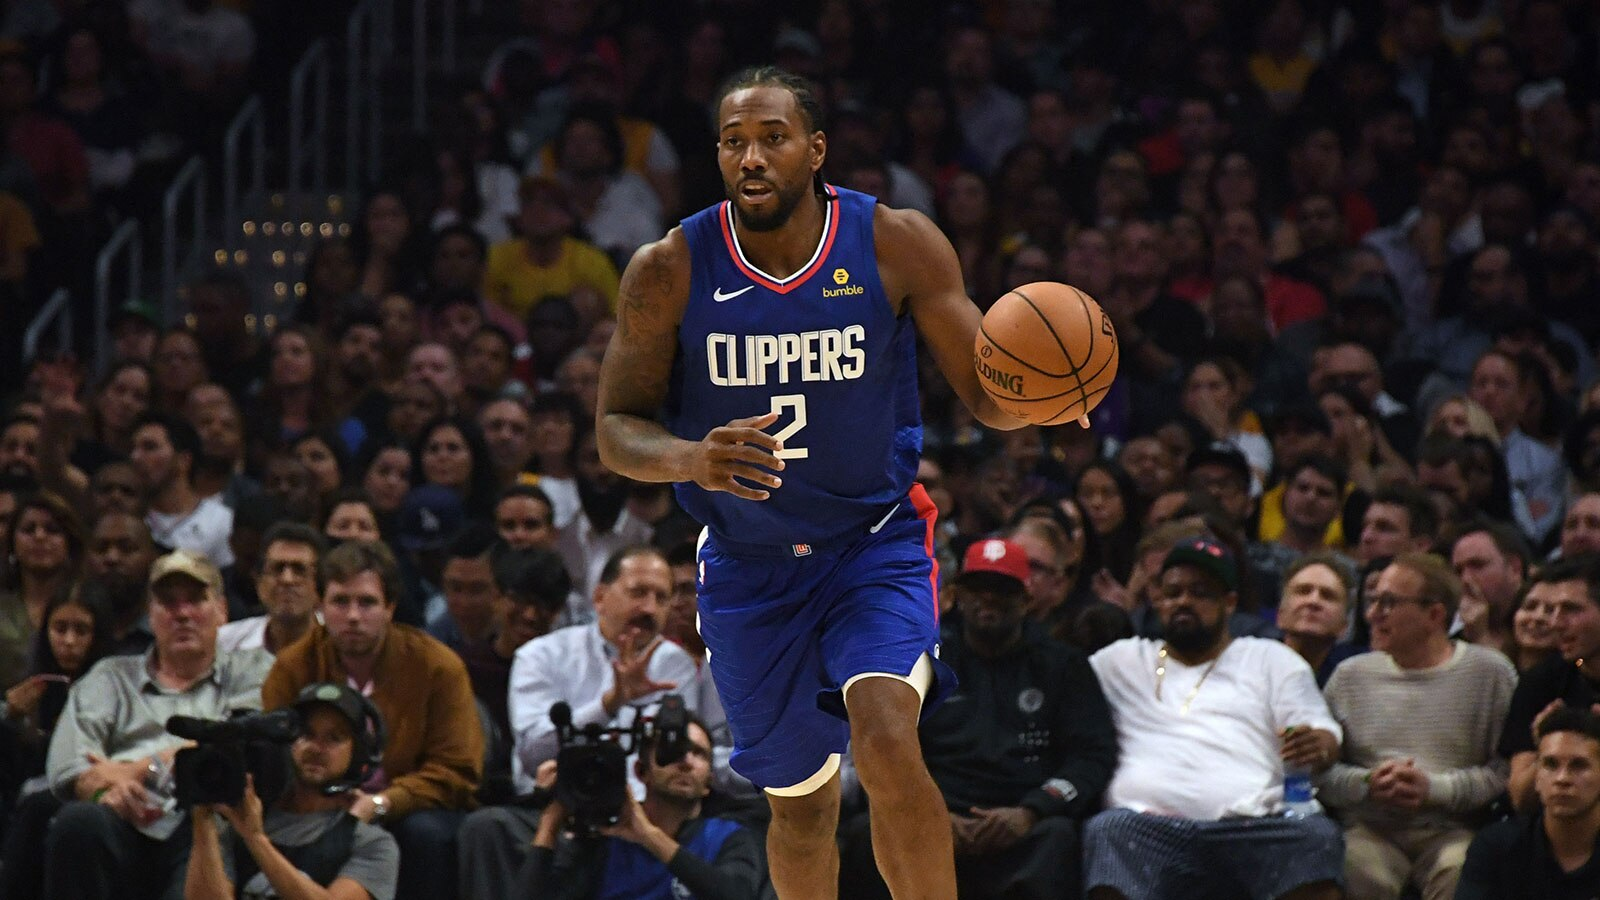 Los Angeles Clippers At Denver Nuggets Tntdrama Com